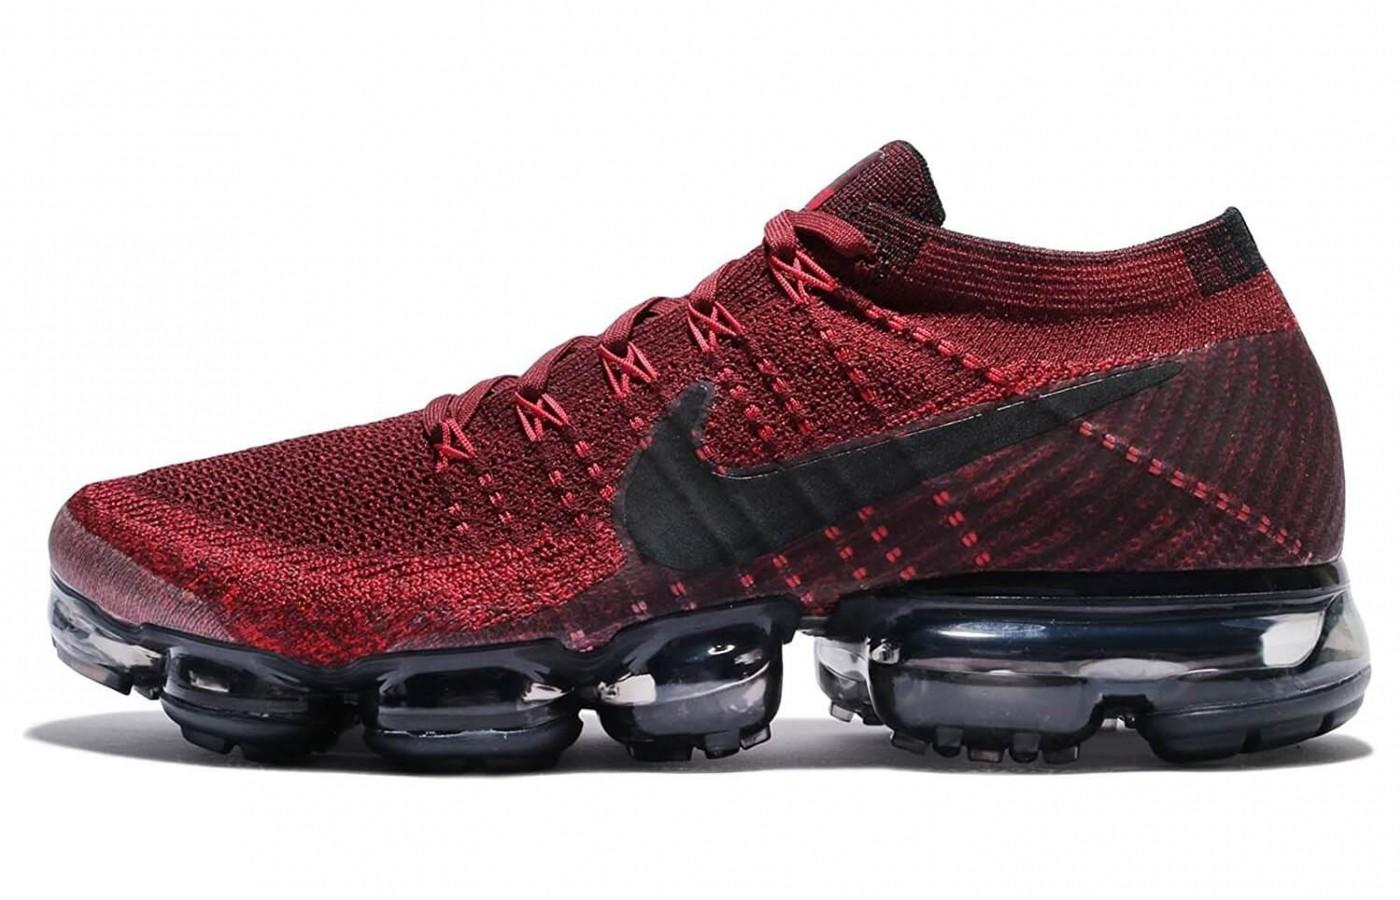 size 40 96f9c 675de Nike Air Vapormax Flyknit. The platinum coloring and unique design help  this shoe stand out. For those who prefer darker tones, it also comes in  this unique ...